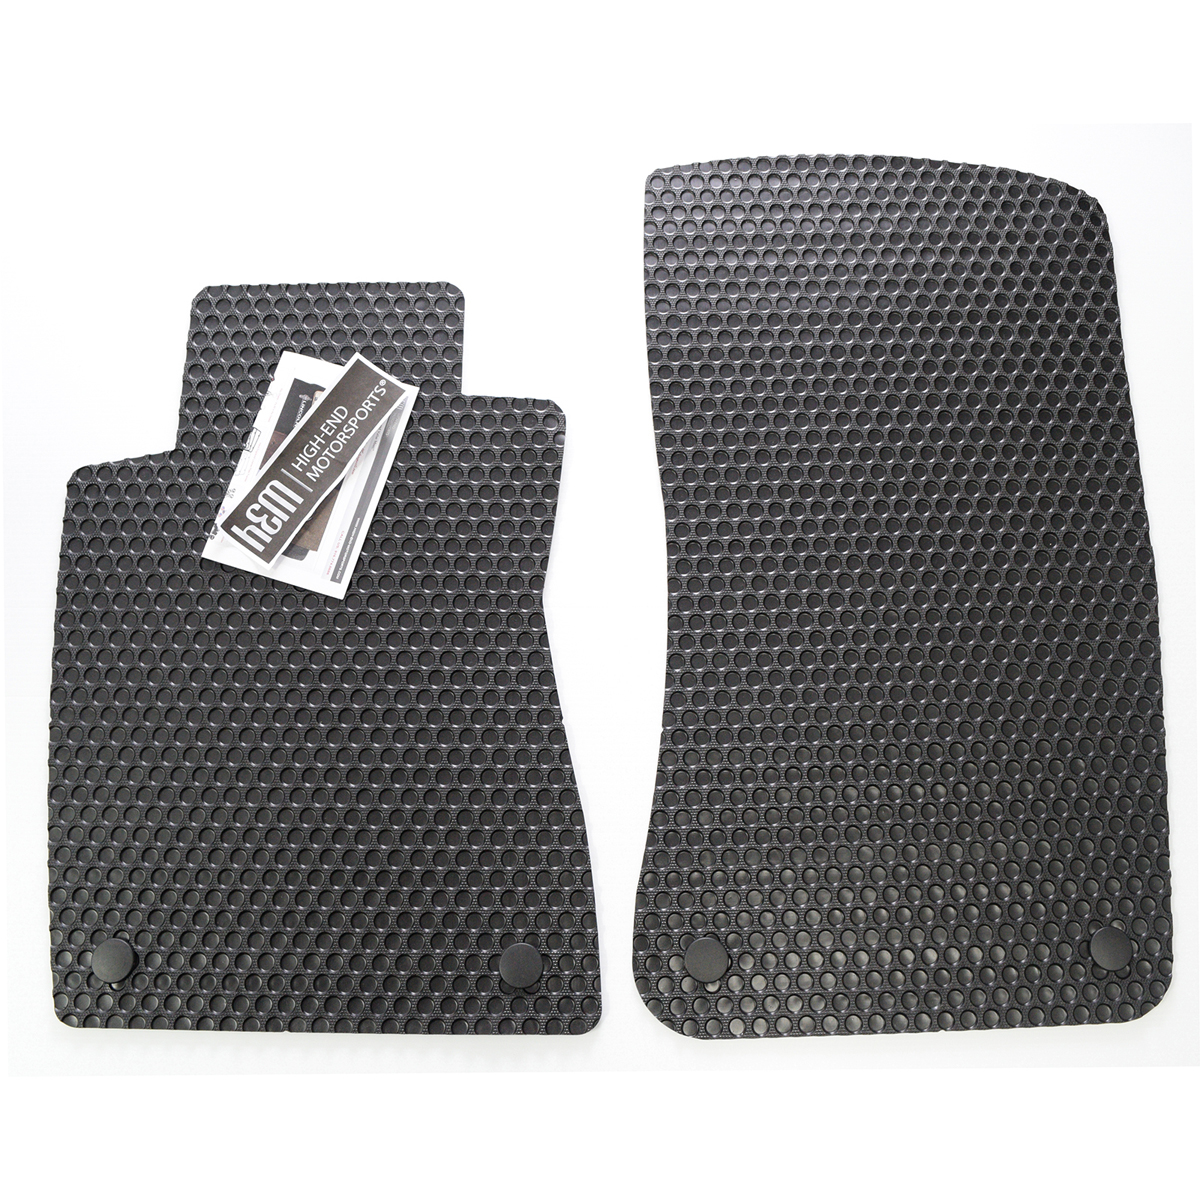 show ignite the foot floor car volvo mats inspirational of seats for